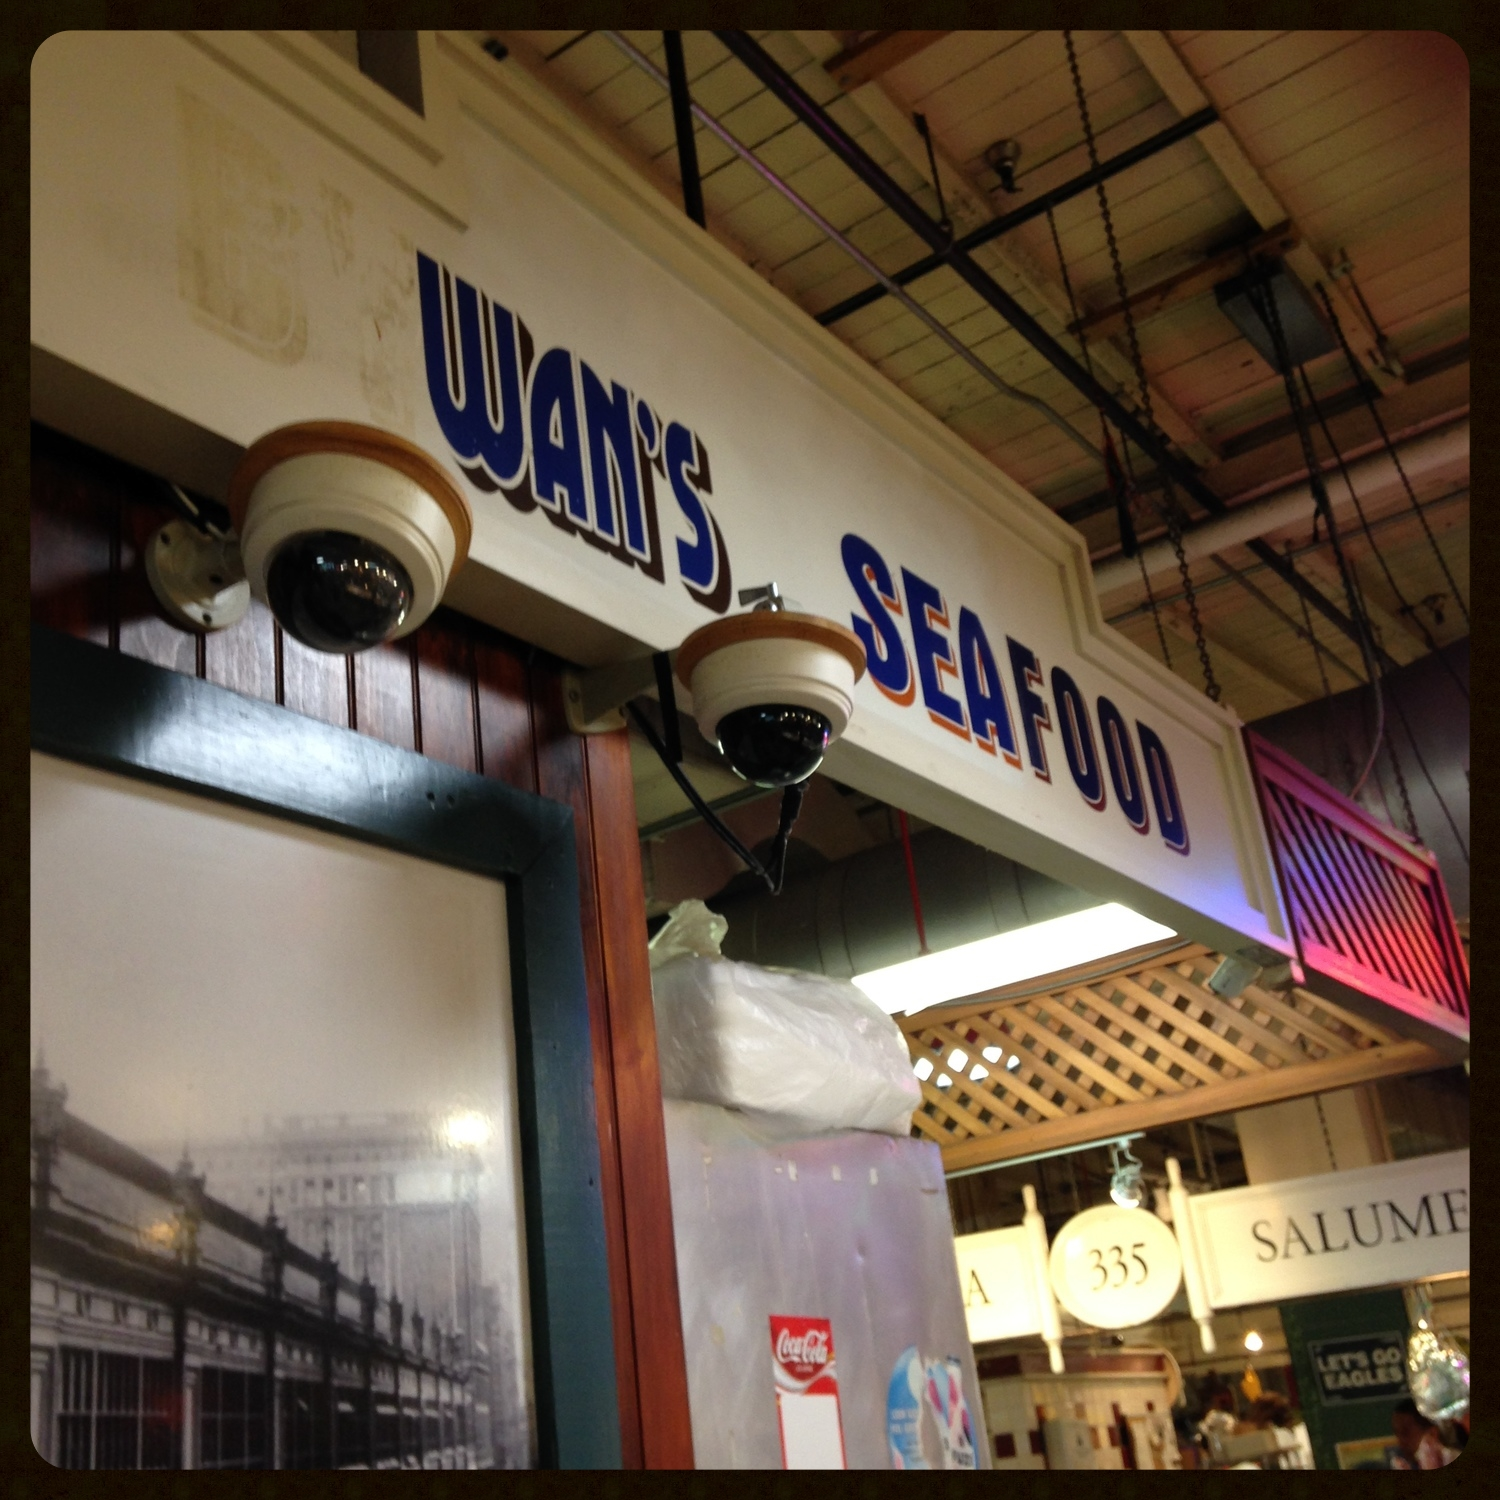 Wan's Seafood at the Reading Terminal